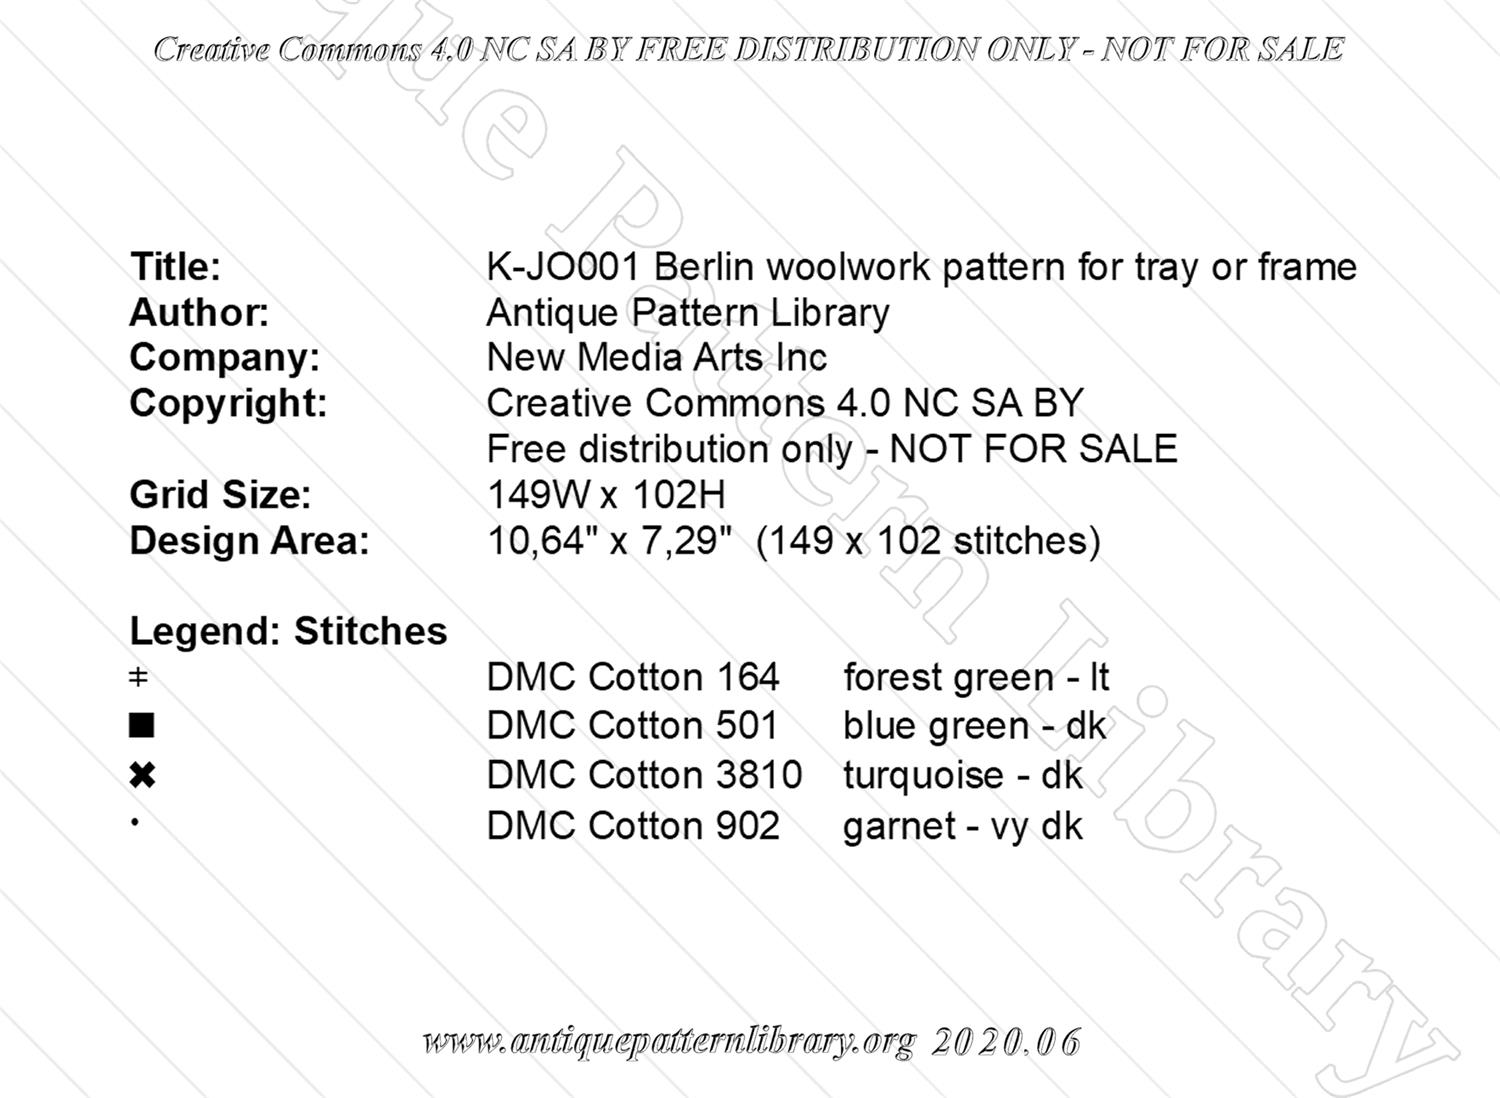 K-JO001 Berlin woolwork pattern for tray or frame